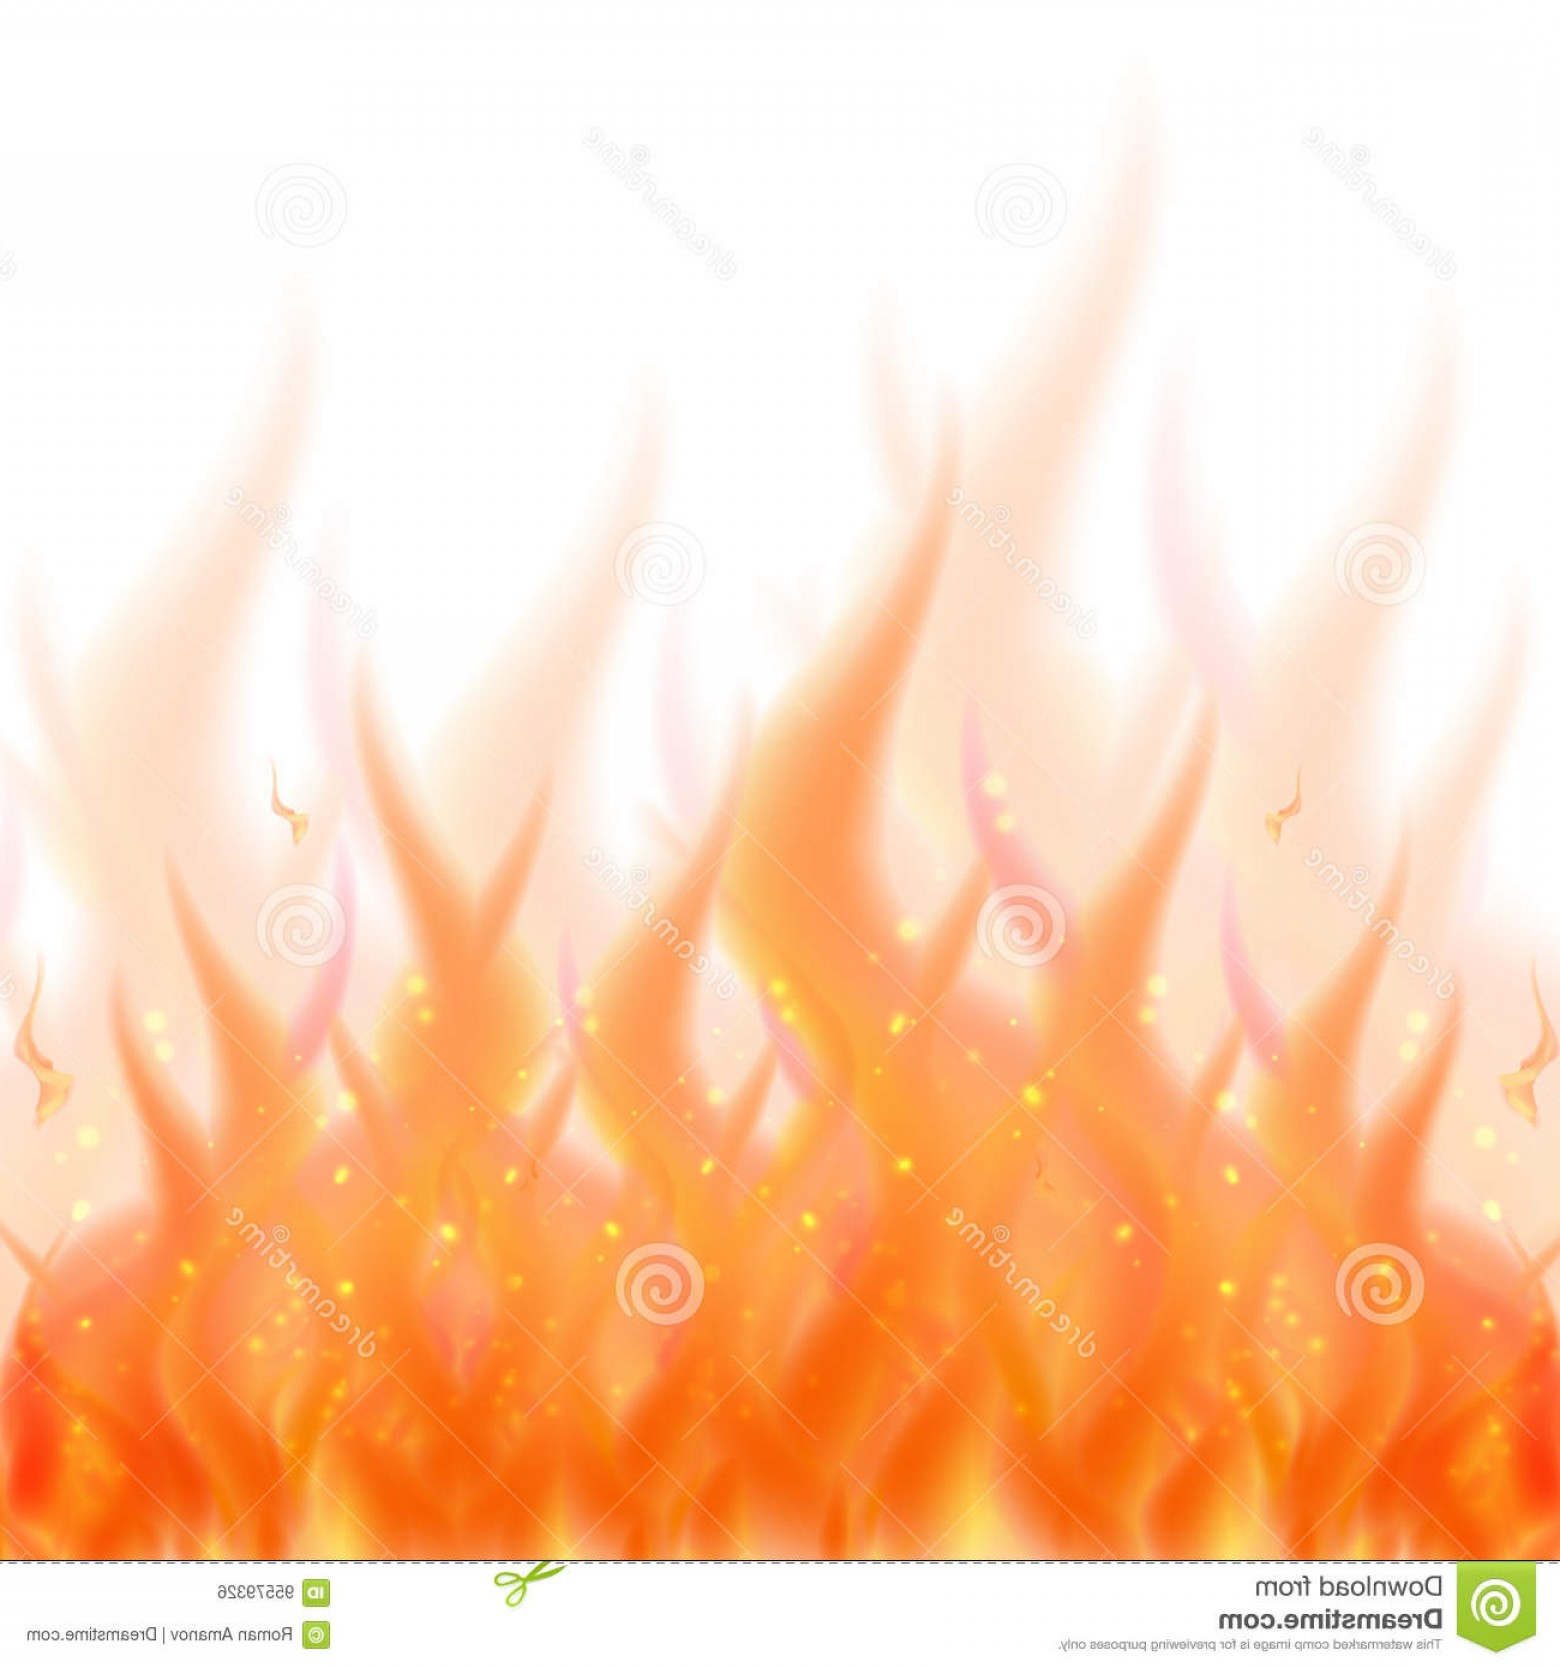 Vector Flame Stick Pattern: Stock Illustration Fire Flame Background Vector Illustration Burning Fire Isolated White Image